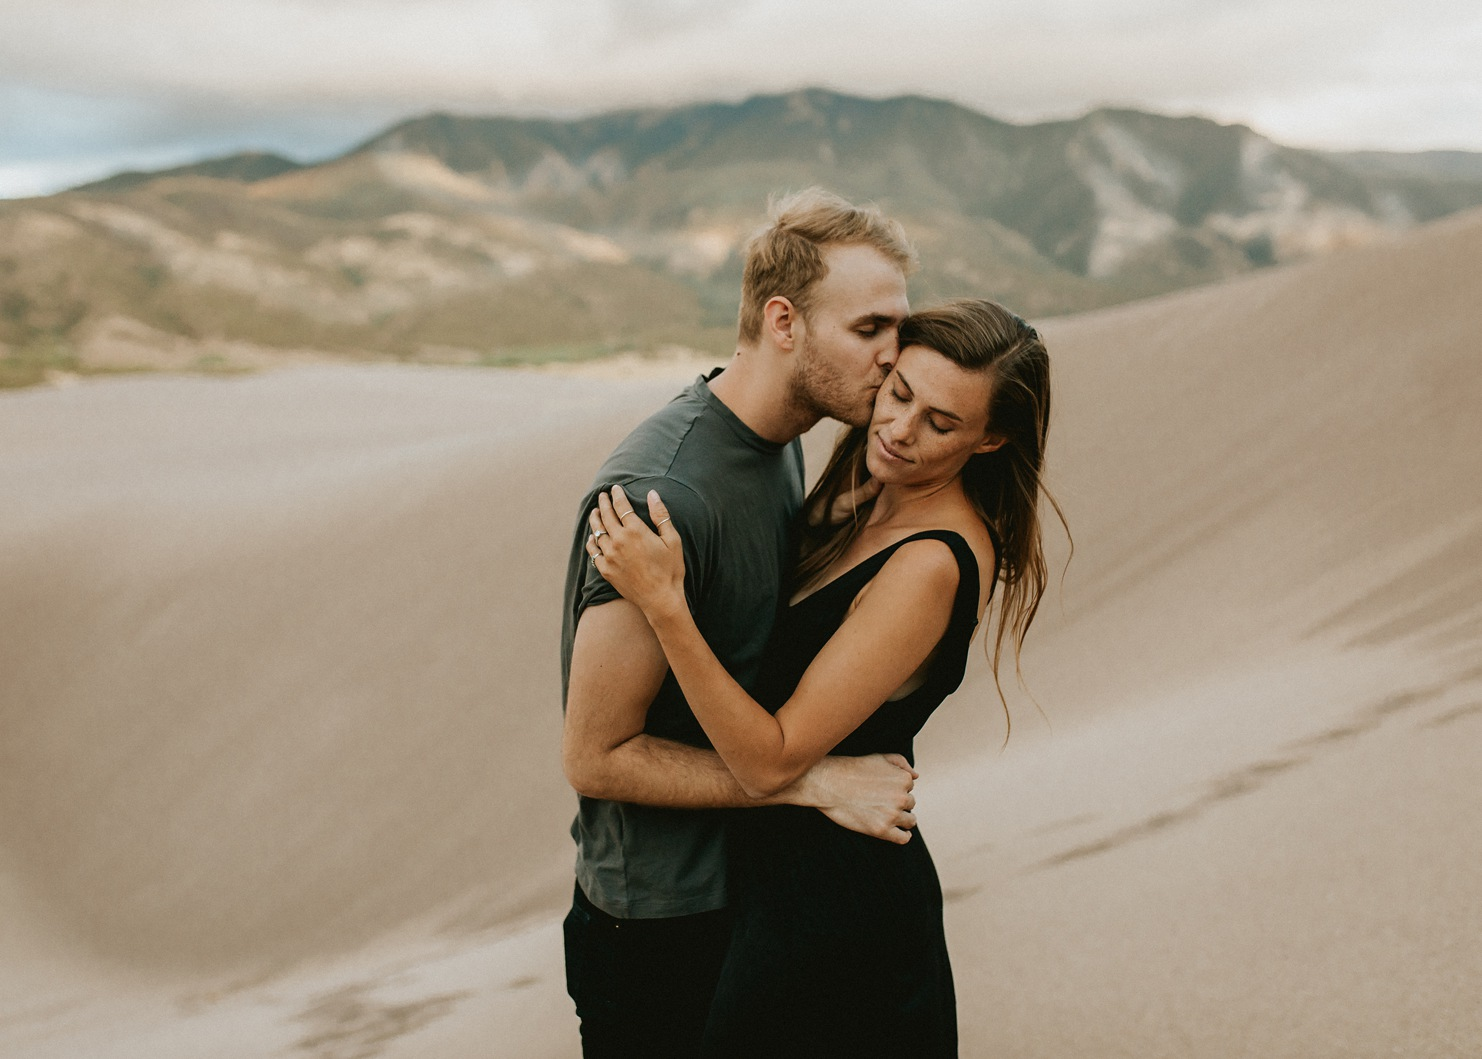 colorado-wedding-photograher-96.jpg